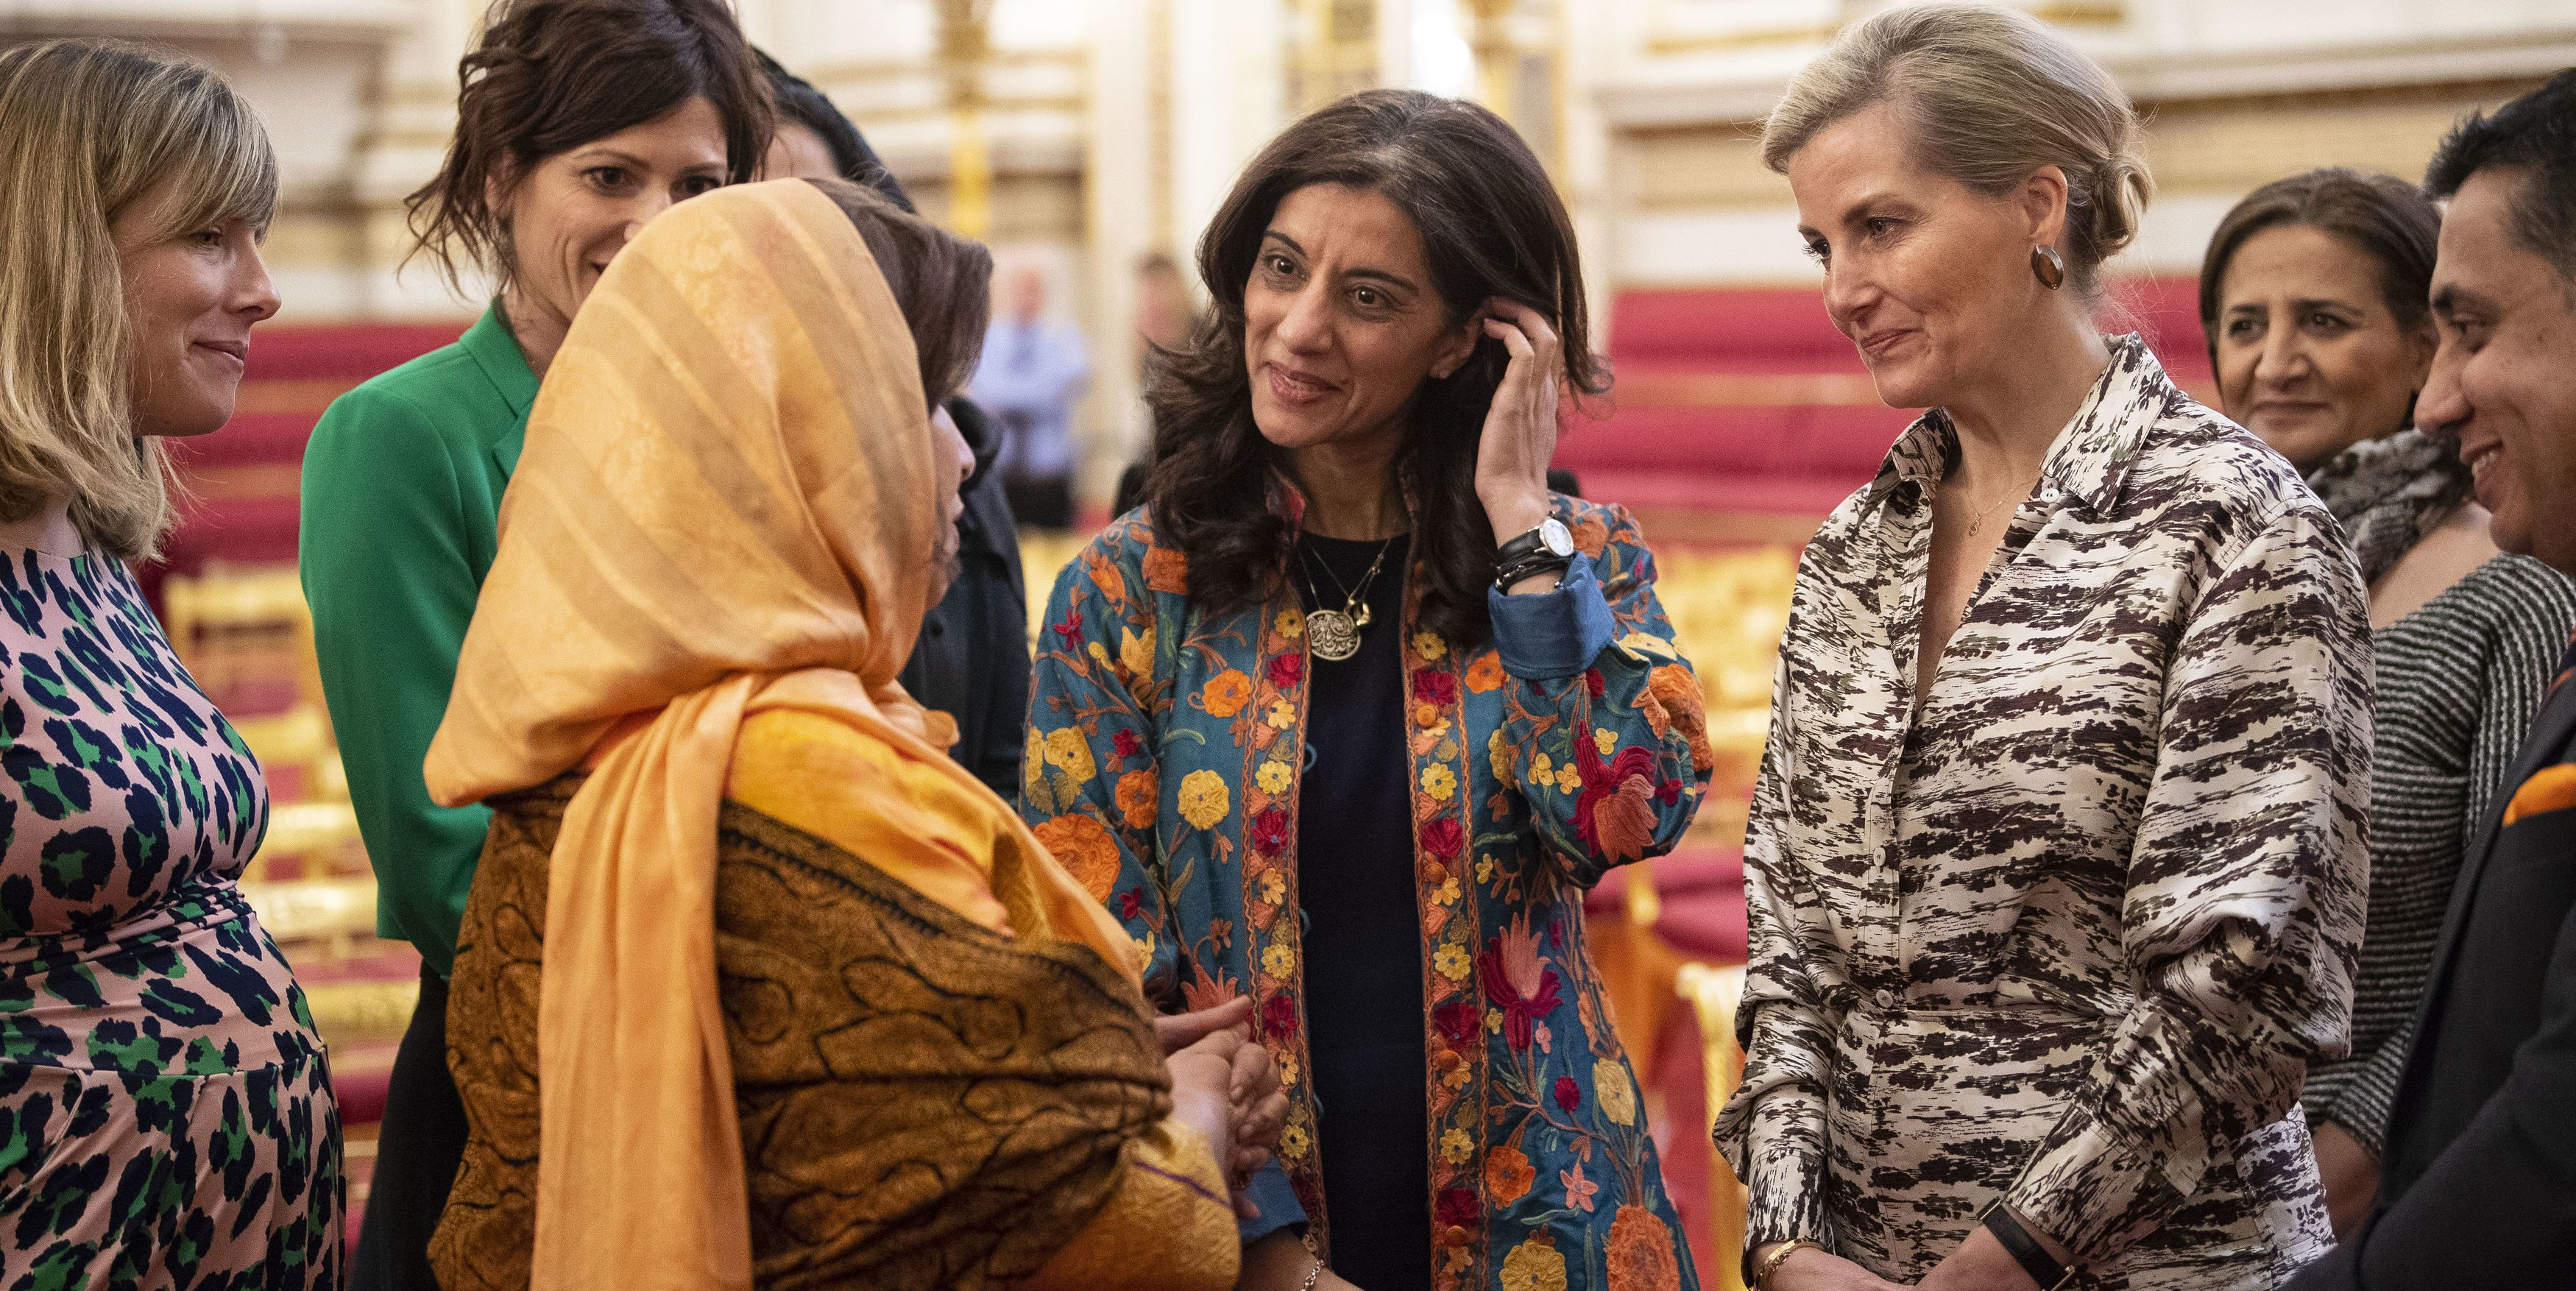 Sophie, Countess of Wessex Hosts Reception For Women Peacebuilders On International Women's Day 2019